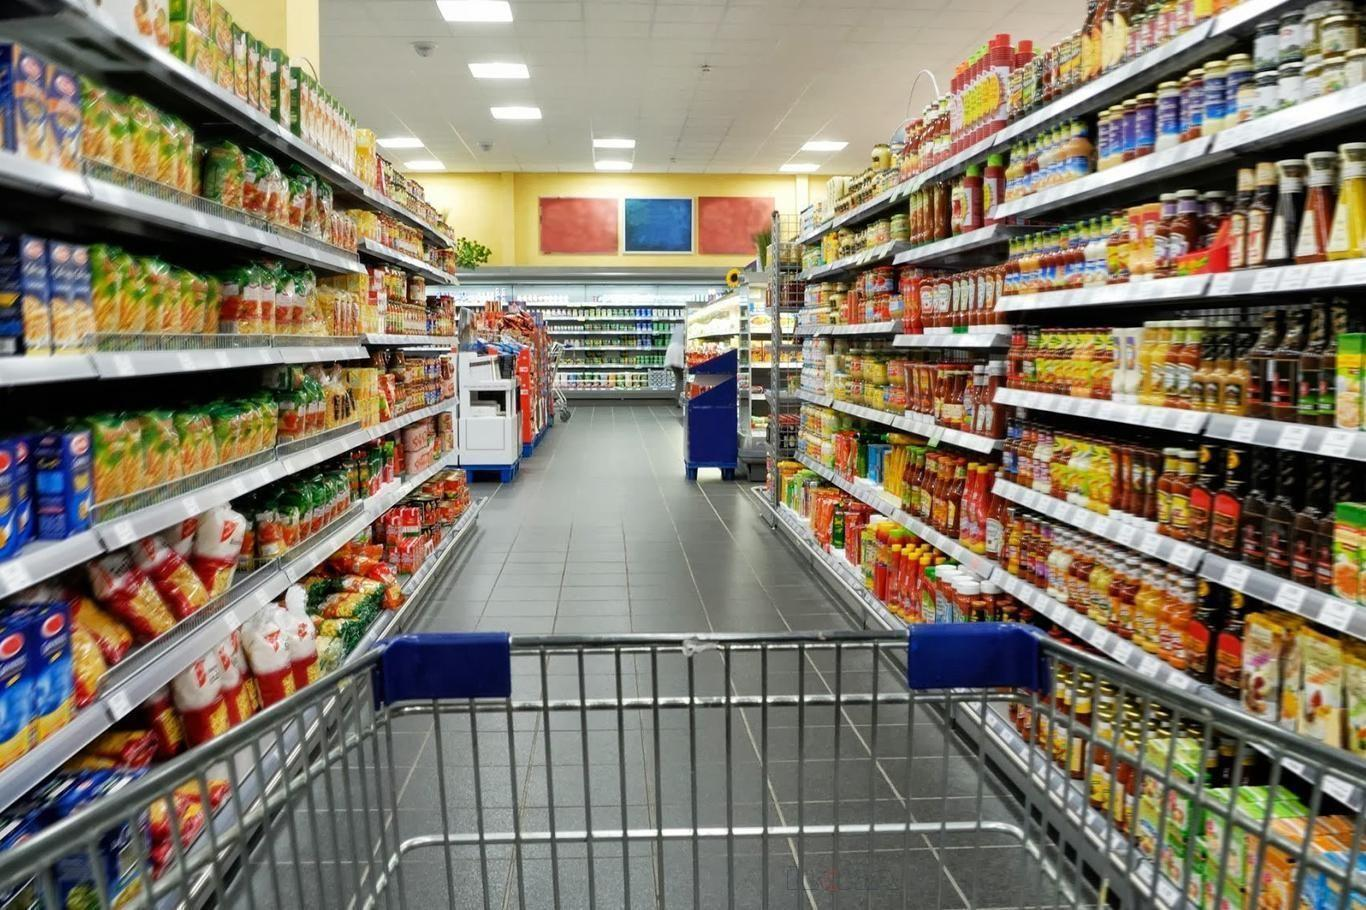 Retail sales volume decreases by 0.8% on annual basis in Turkey